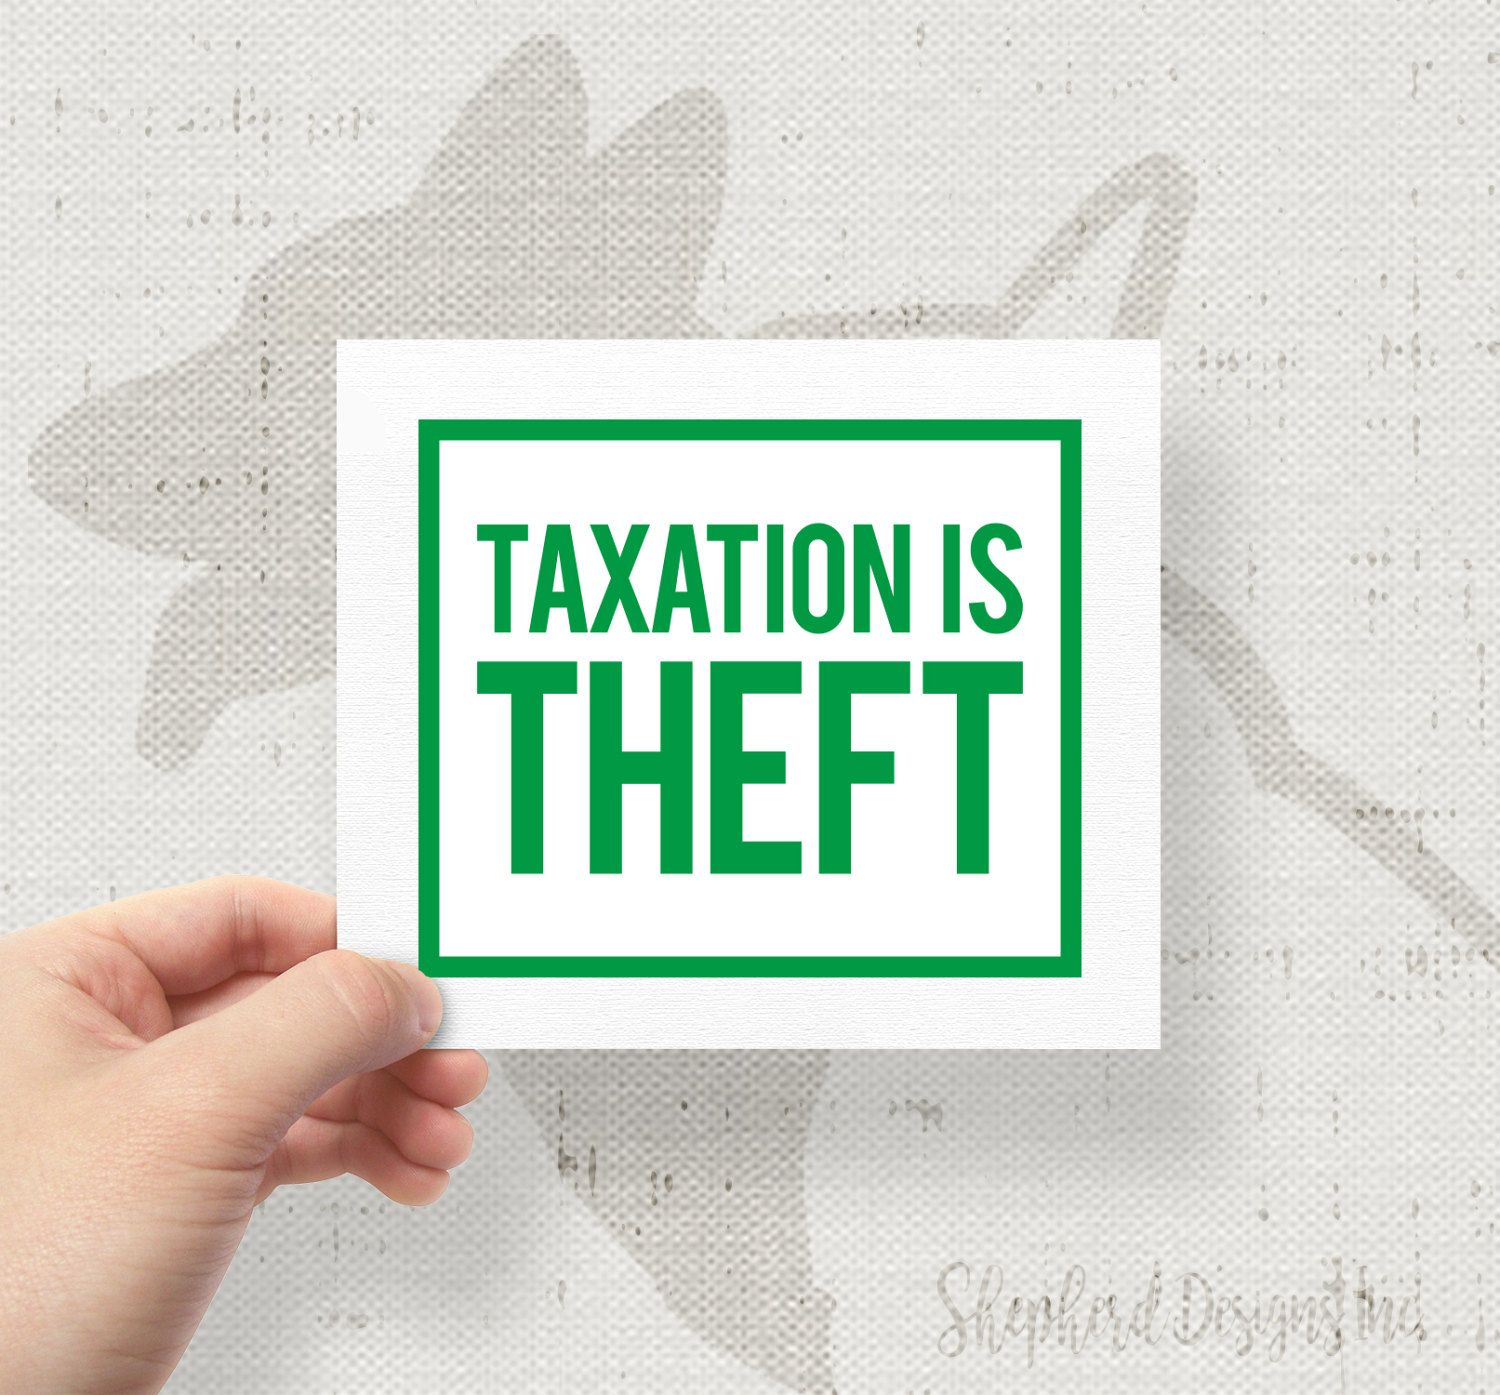 Taxation is theft 4x4 75 bumper sticker decal by shepherddesignsinc on etsy